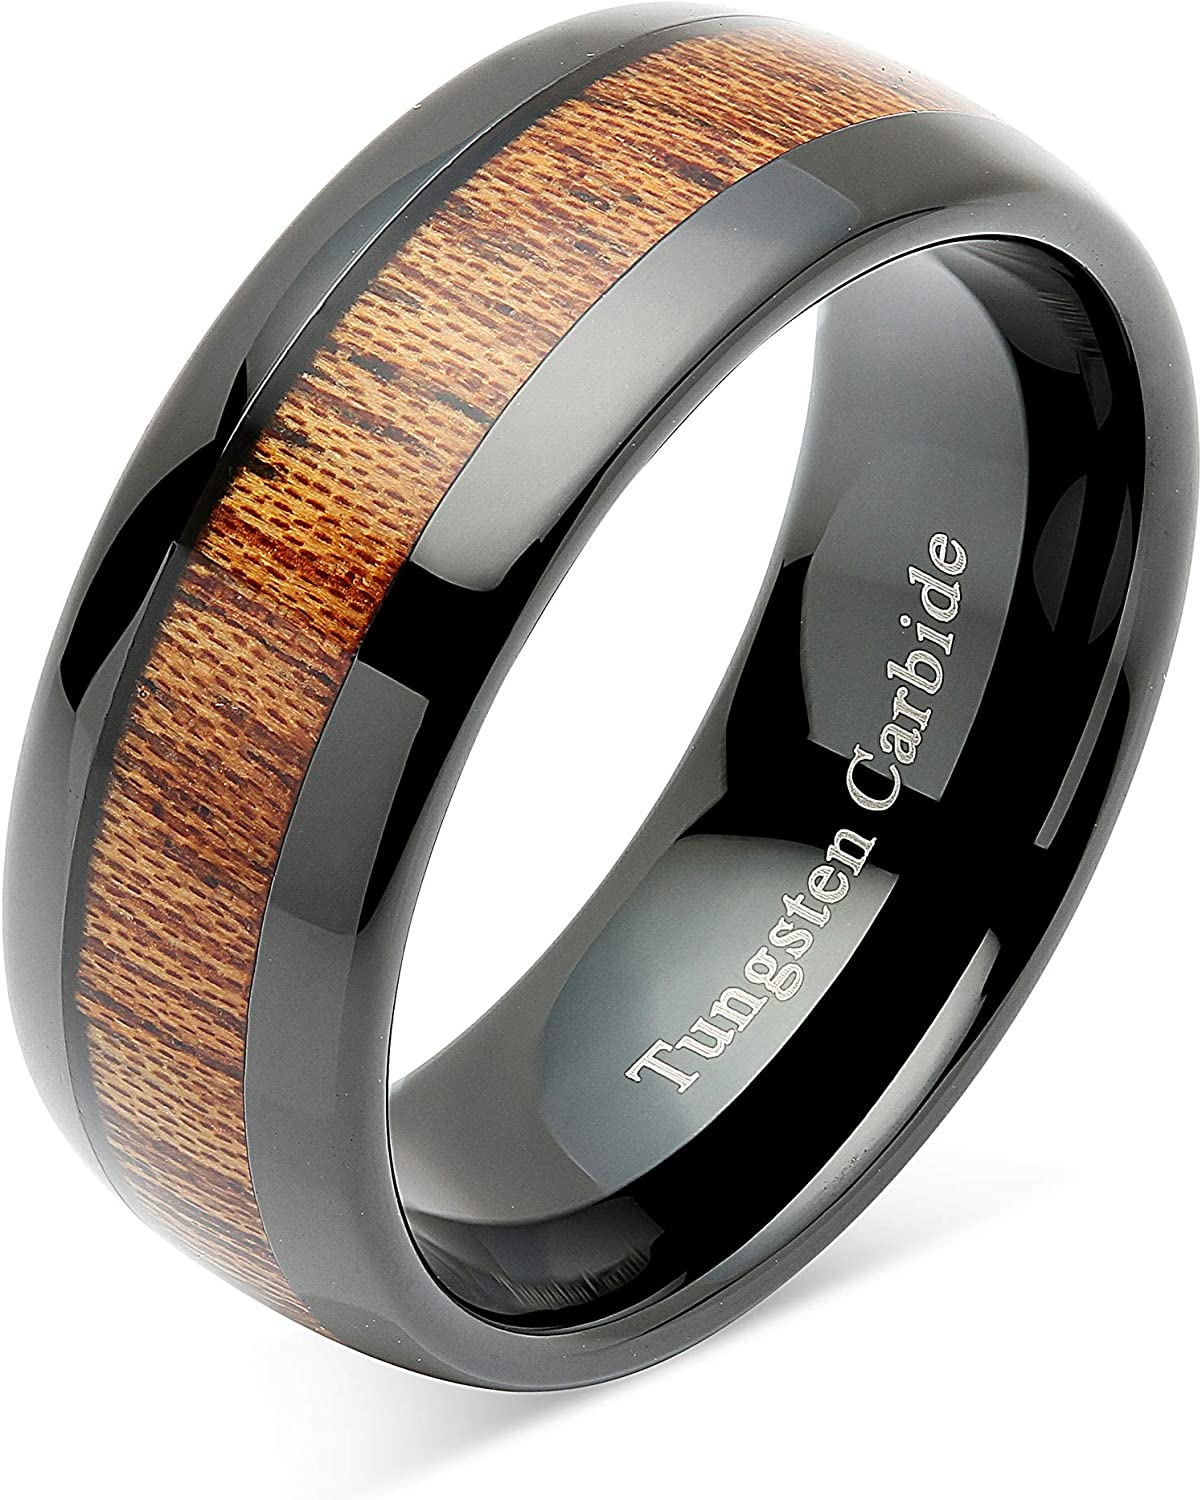 100S JEWELRY Tungsten Rings for Men Women Wood Inlay Black Plated Comfort Fit Size 6-16